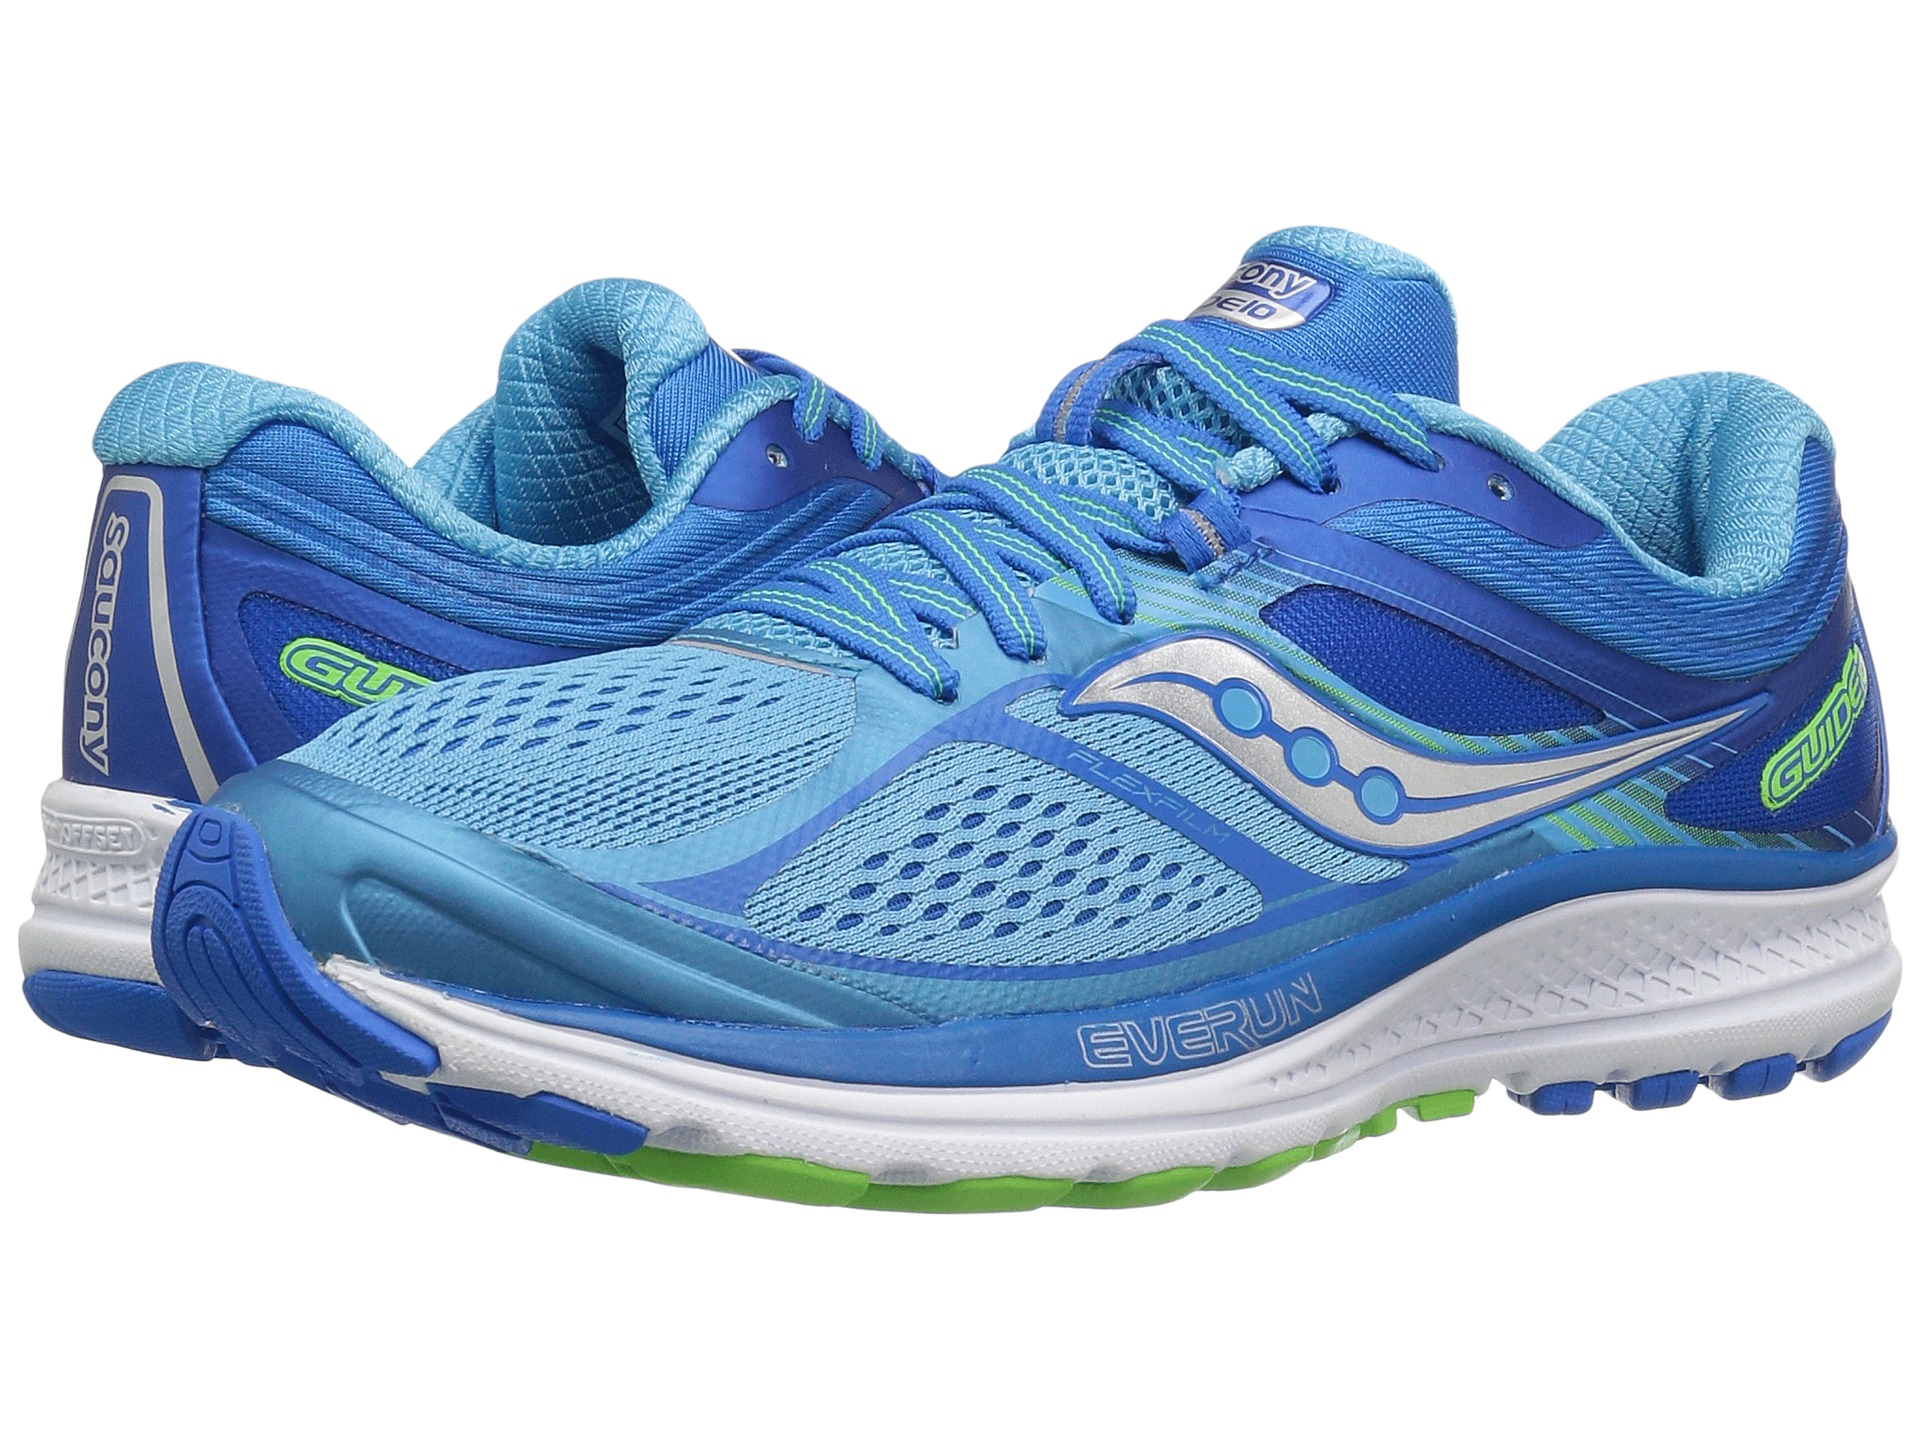 Buy Saucony Fit Guide Gt Up To Off67 Discounted